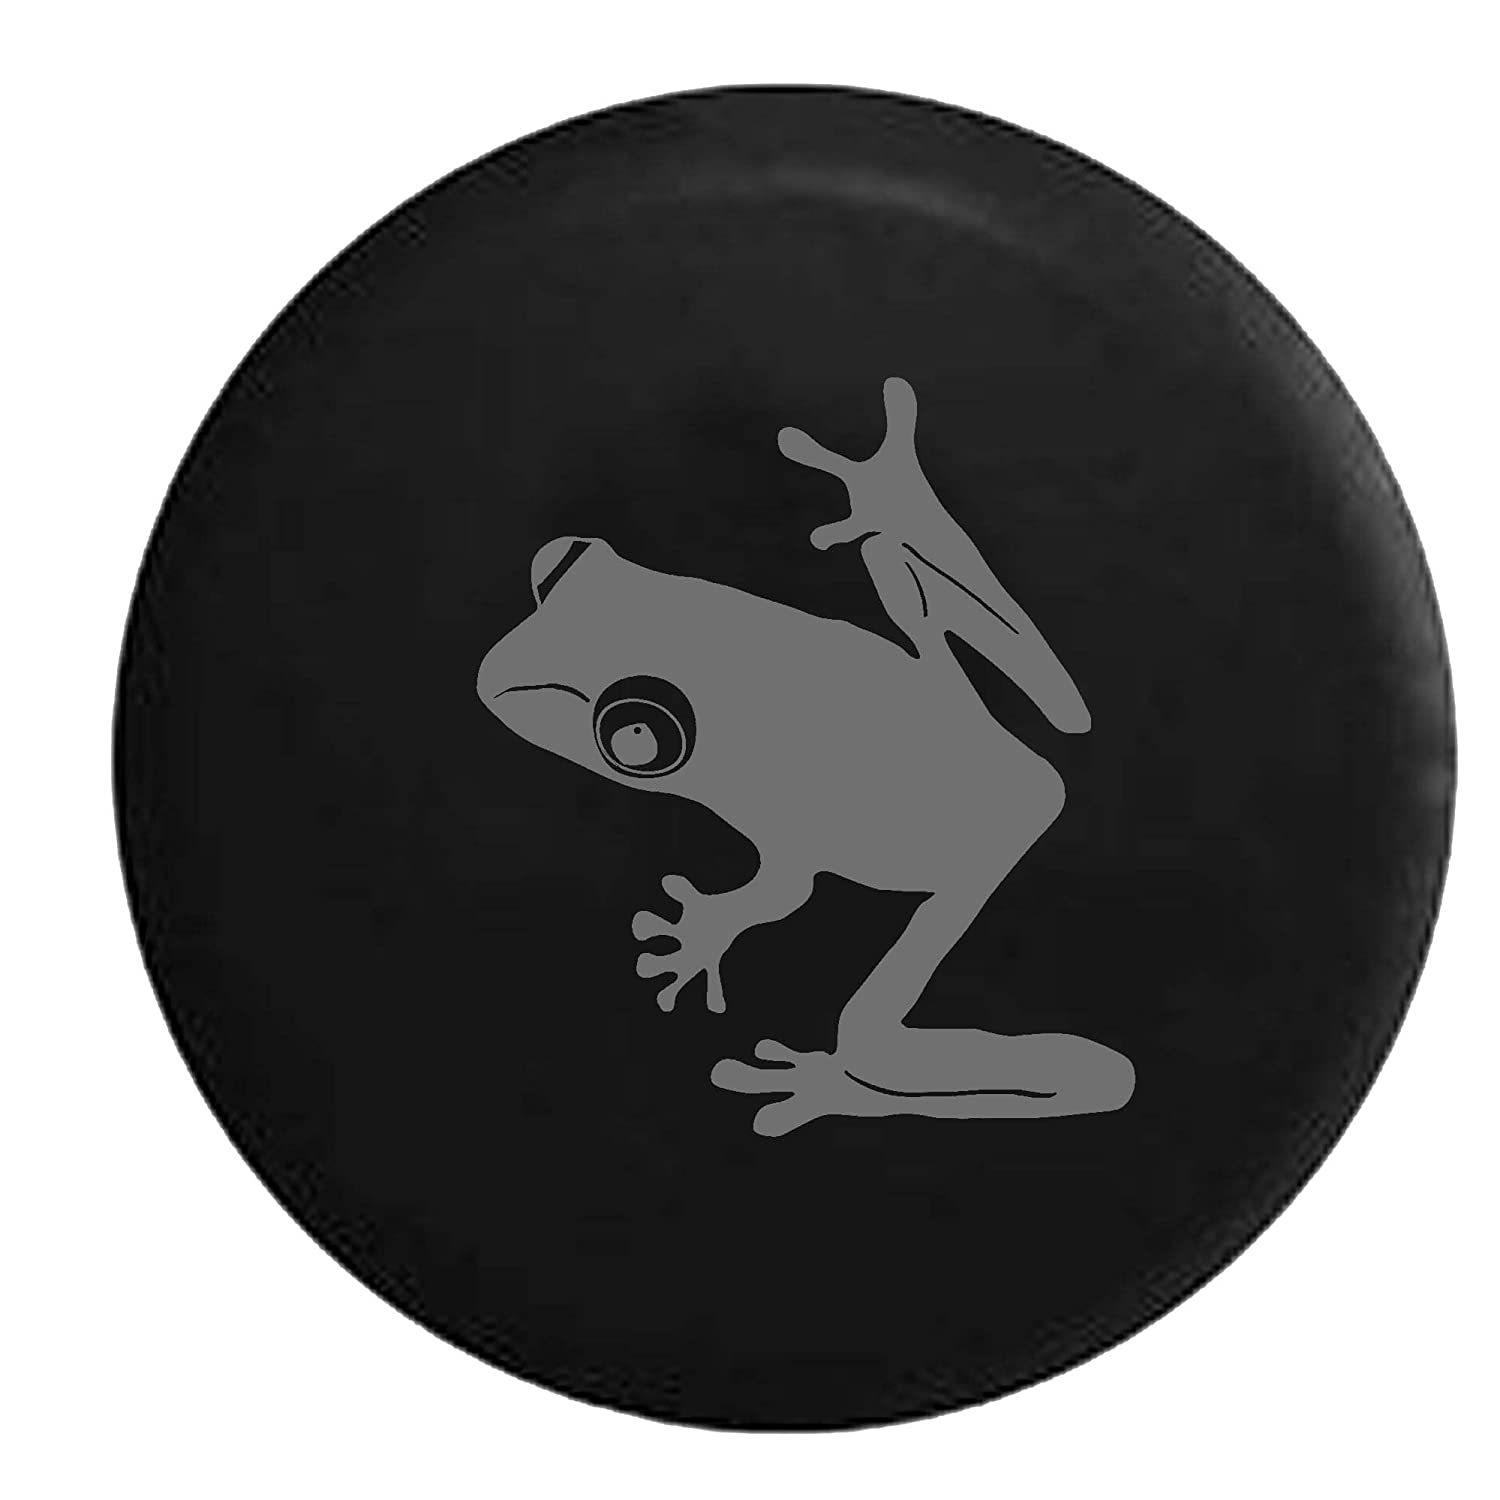 Tree Frog BUGEYE Rainforest Endangered Island Sea Turtle Jeep Spare Tire Cover Vinyl Black 31 in Camo